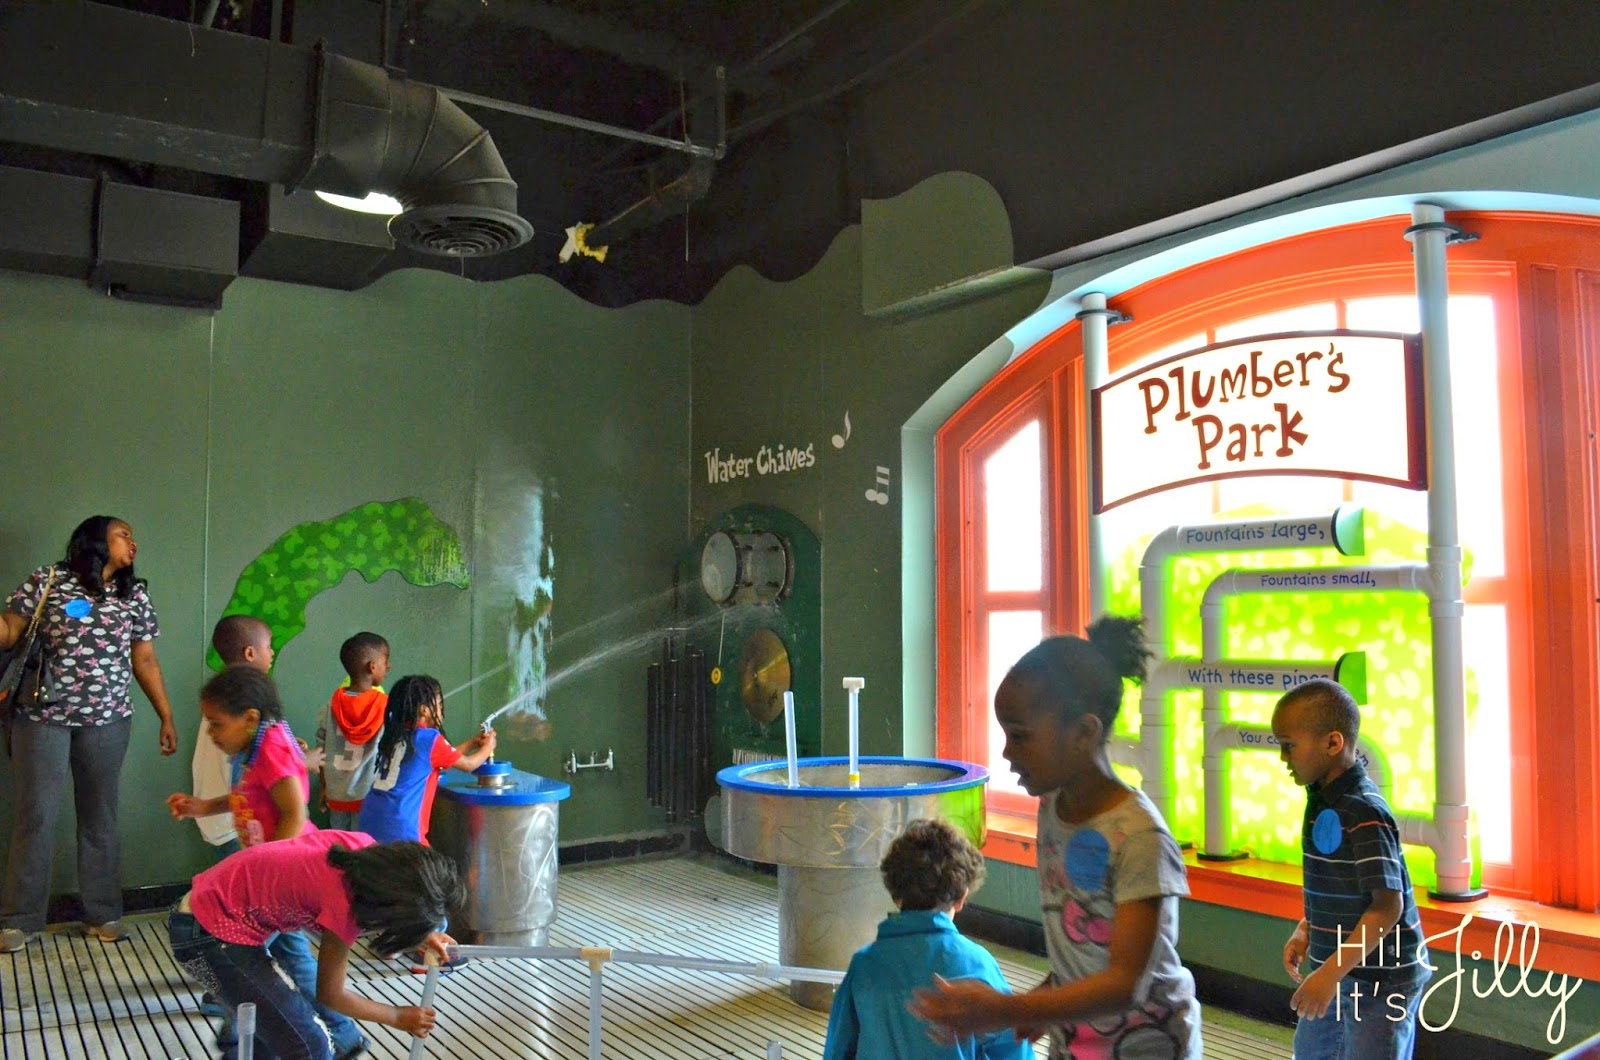 Visit Port Discovery Children's Museum in Baltimore, rated one of the TOp 5 children's museums in the US! #portdiscovery #baltimore #family #kids #vacation